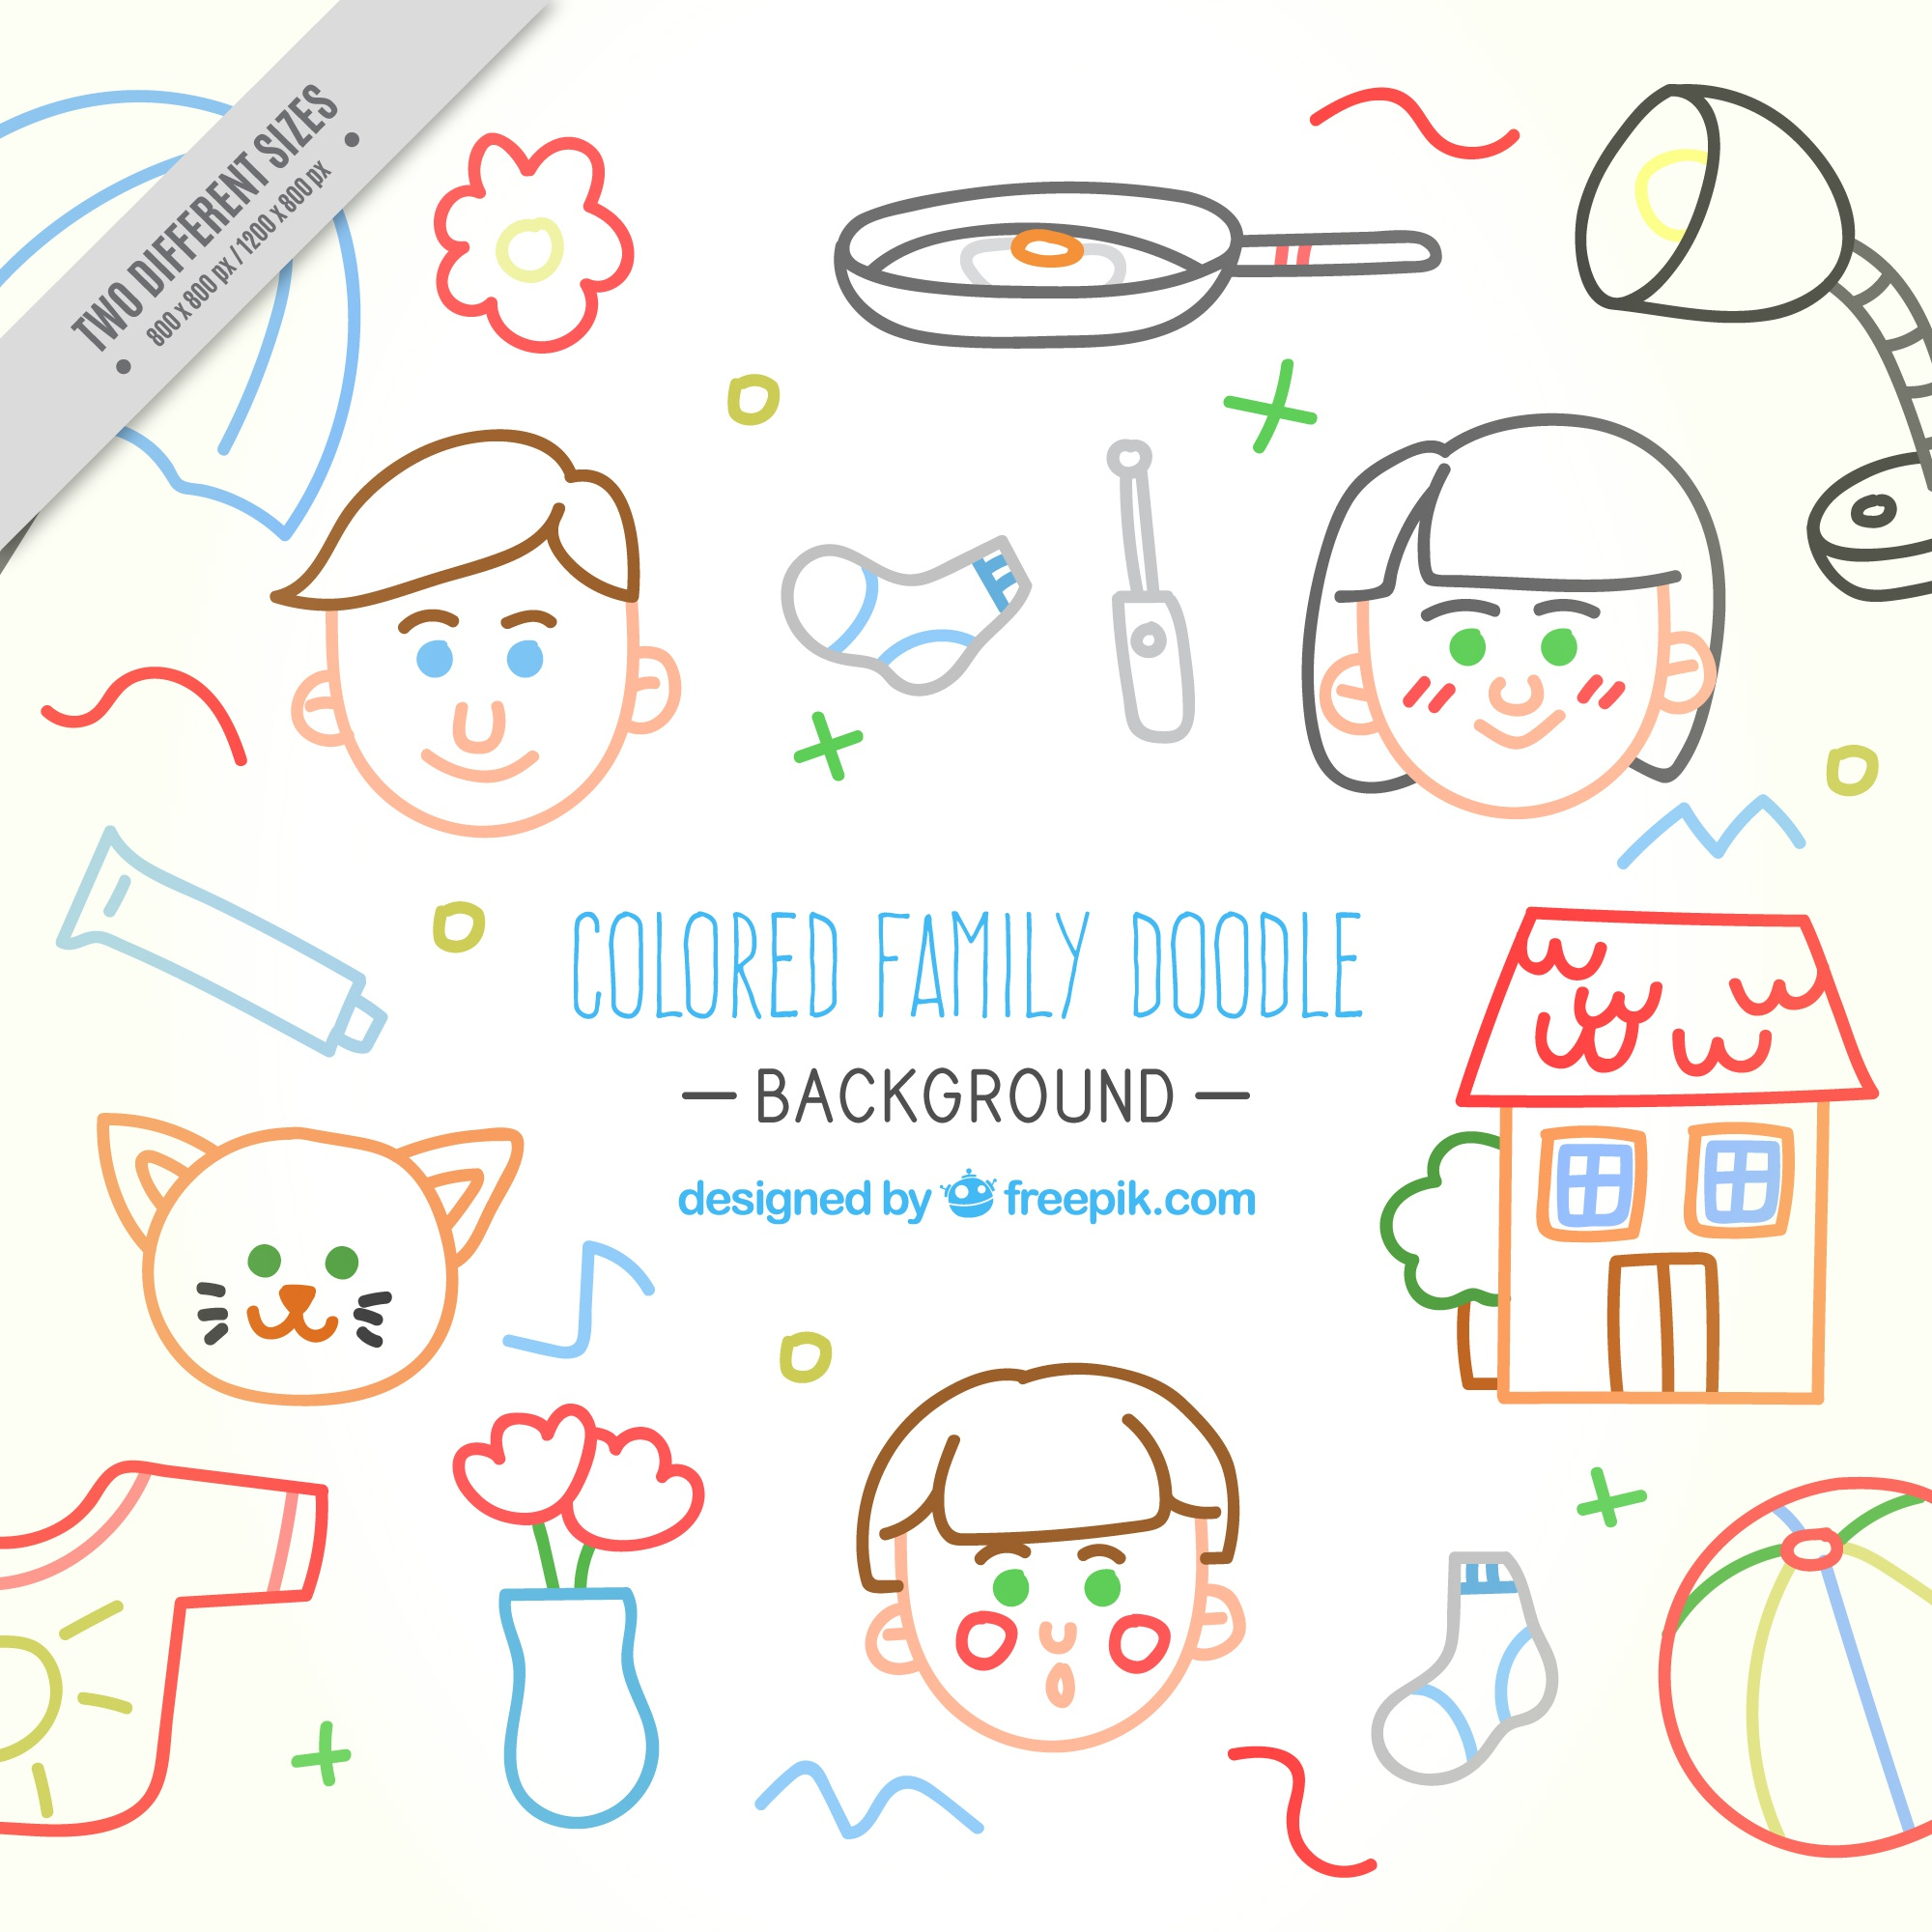 Colors sketches of family and elements background